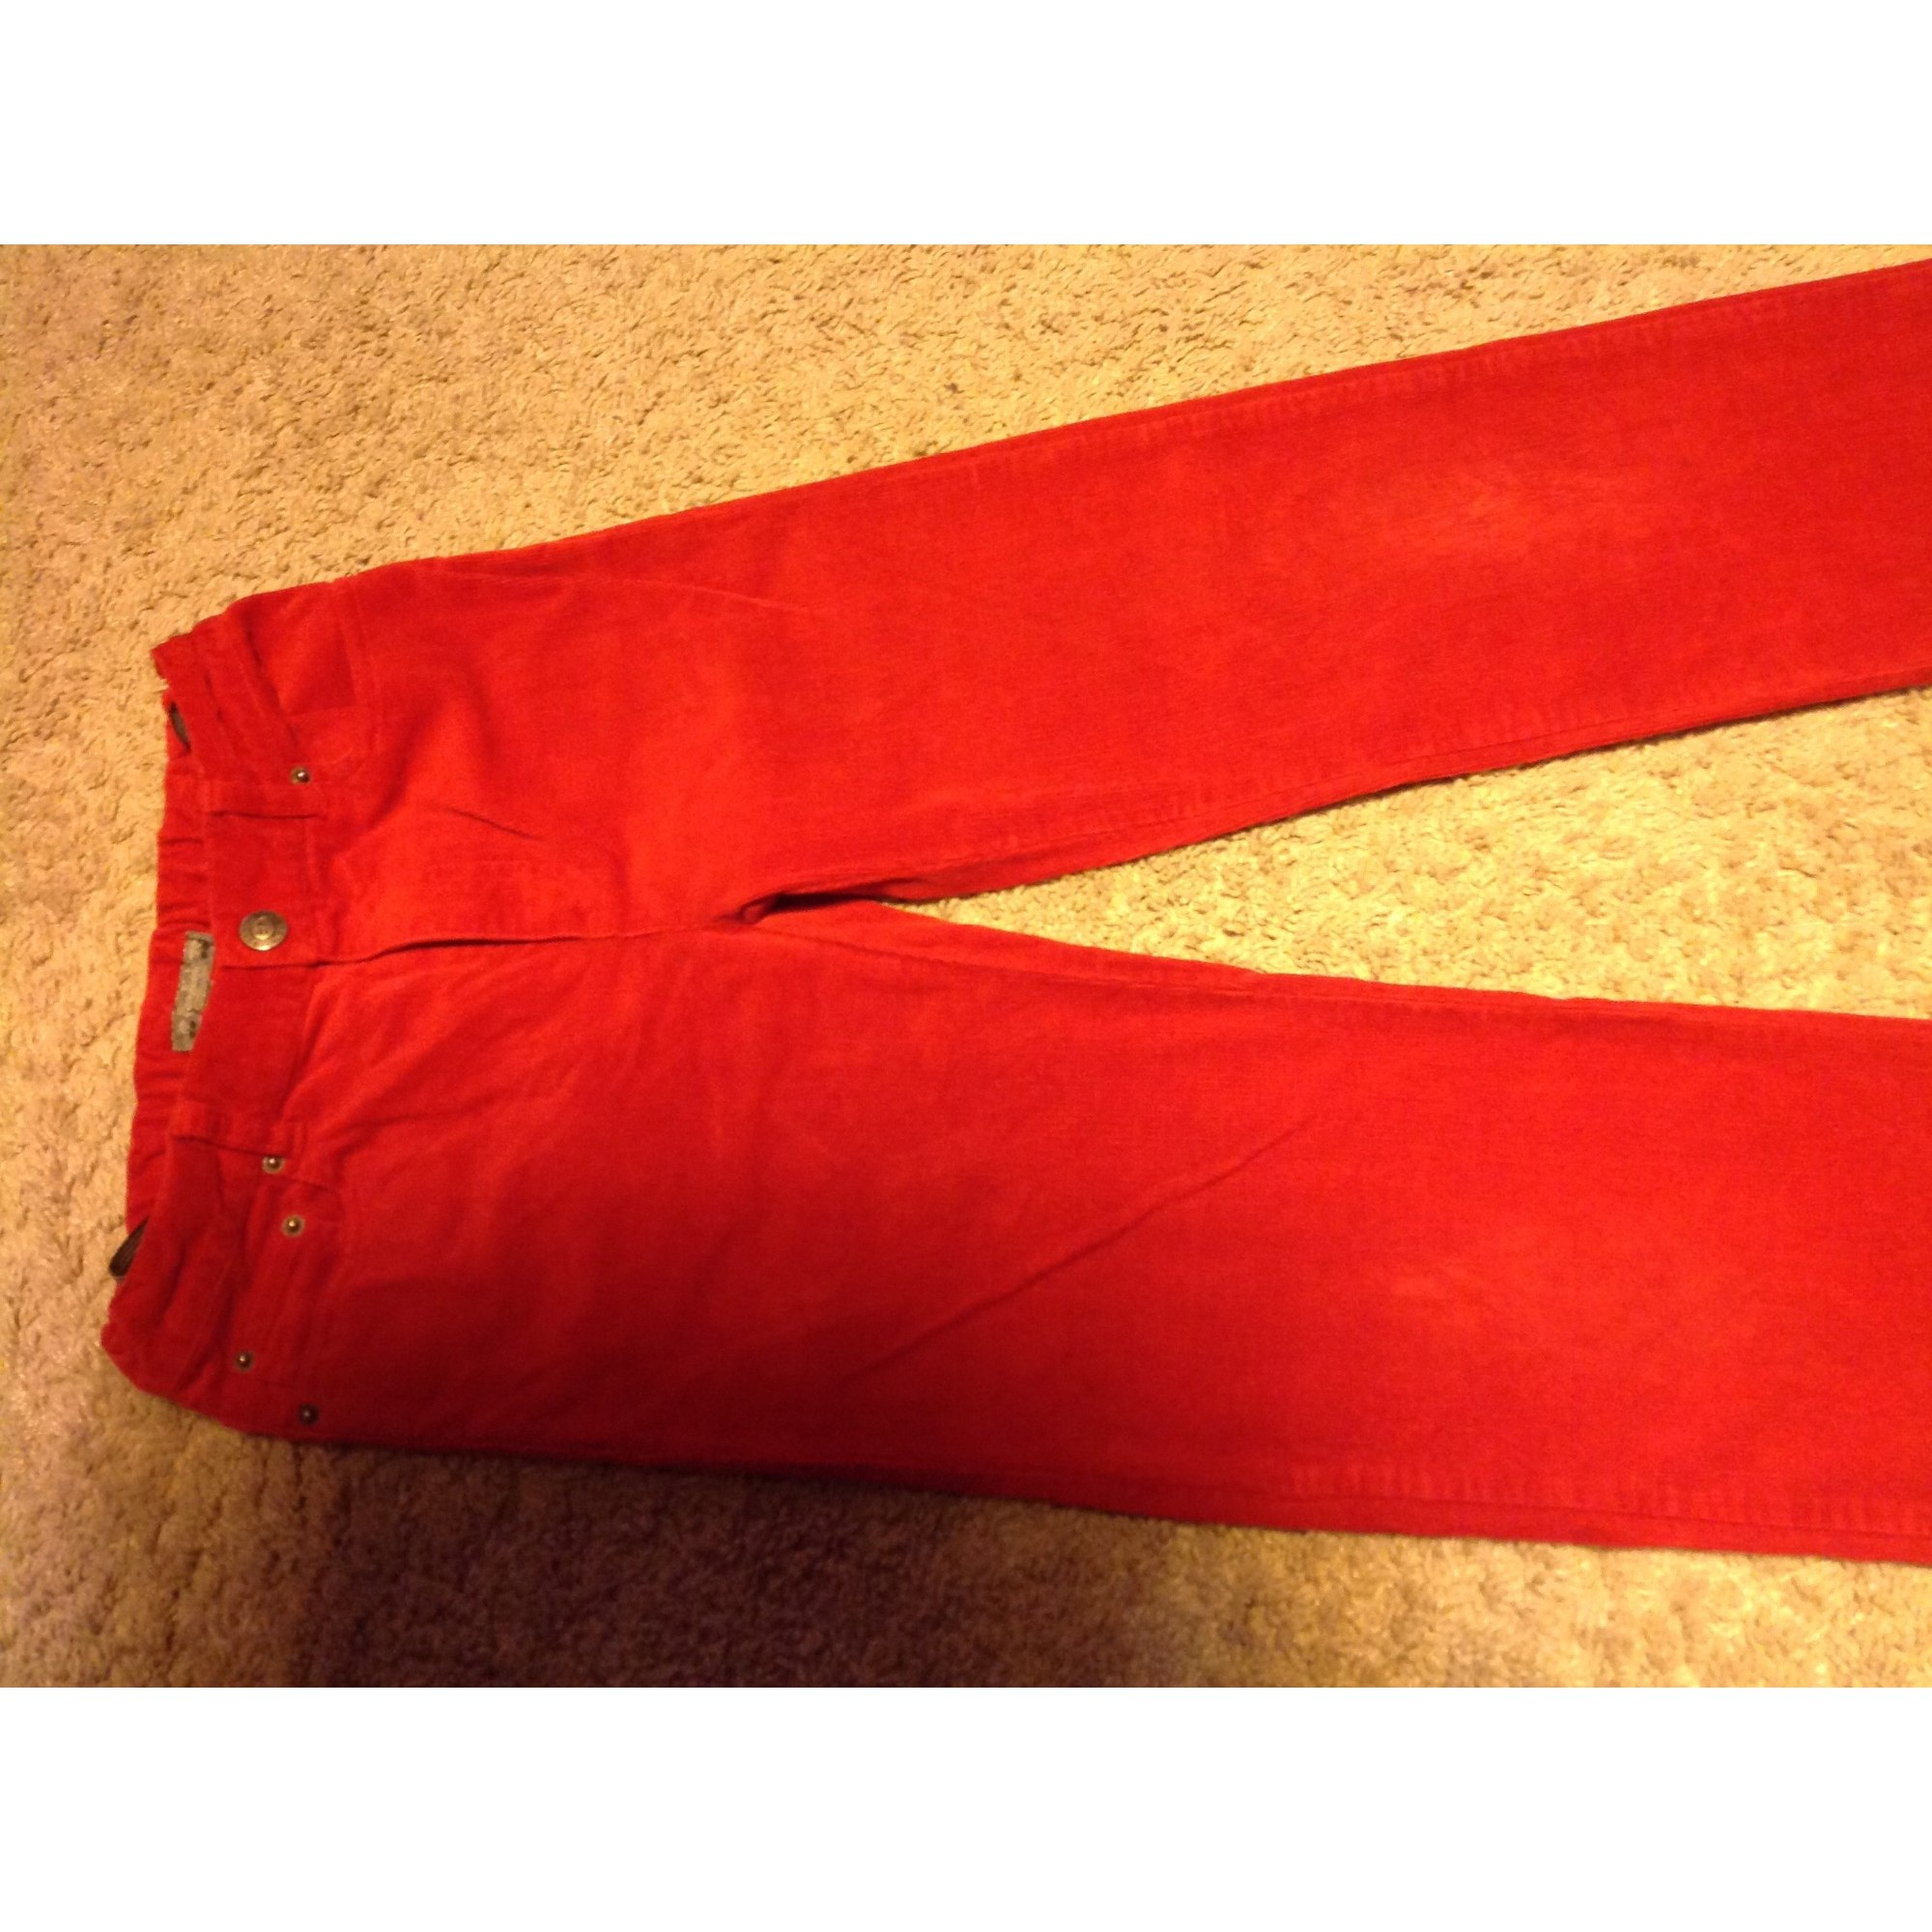 Pants BONPOINT Red, burgundy